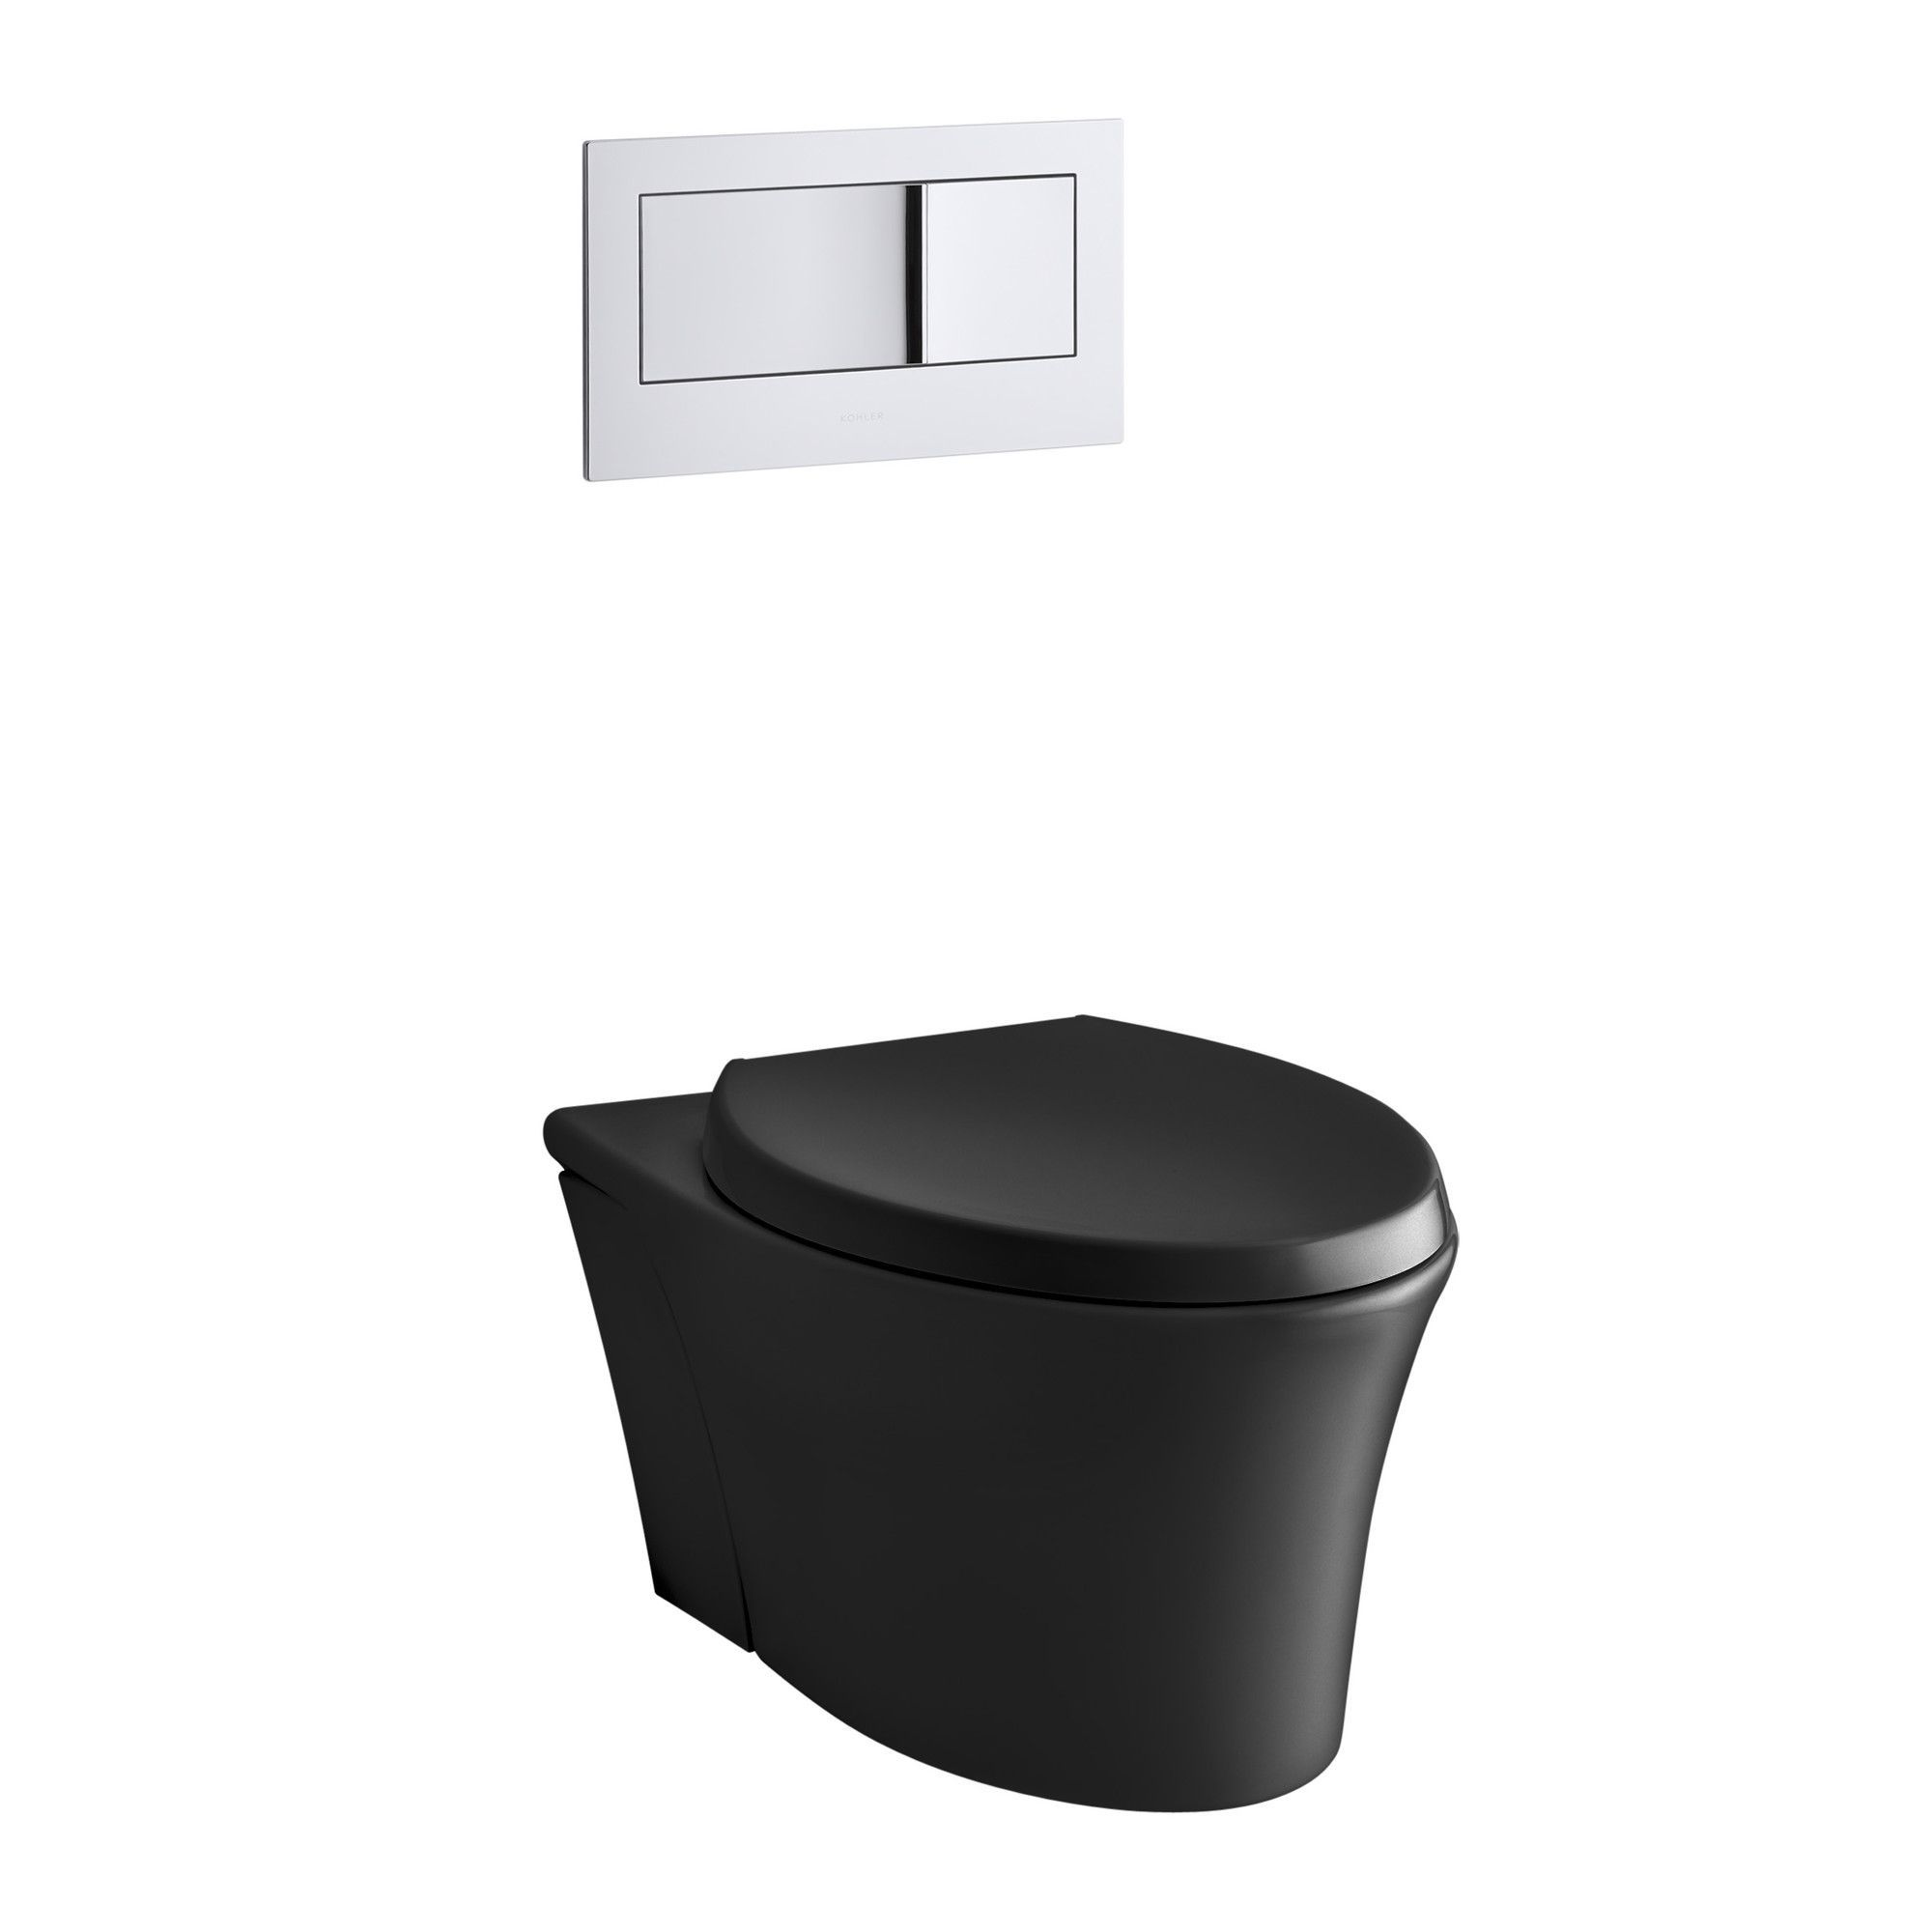 Veil One Piece Elongated Dual Flush Wall Hung Toilet With Reveal Quiet Close Seat Wall Mounted Toilet Toilet Wall Hung Toilet